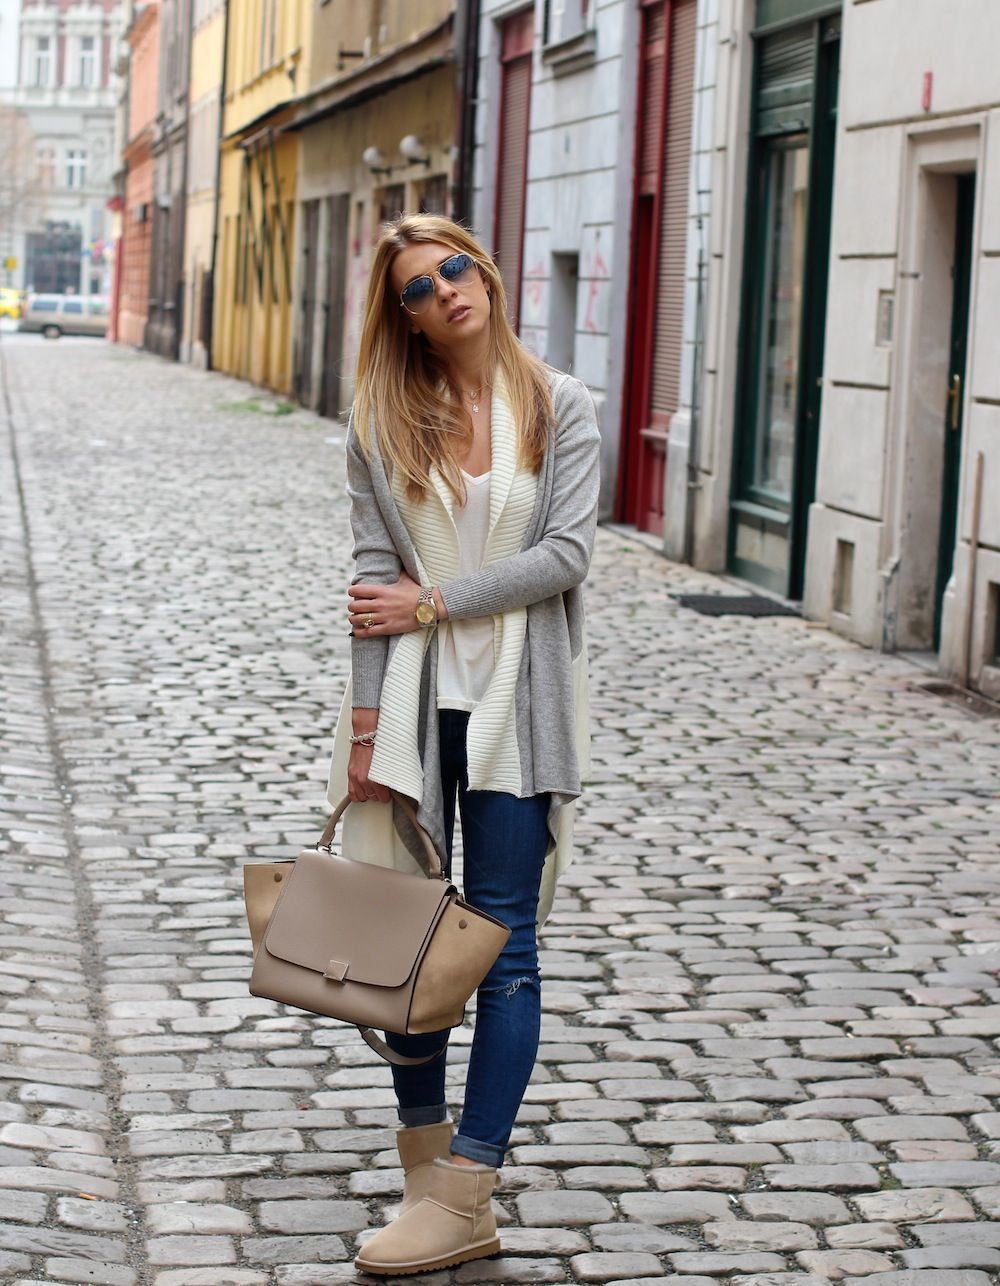 fbcedcaaedf New outfit post on the blog. Wearing Celine Trapeze bag. Blue skinny ...